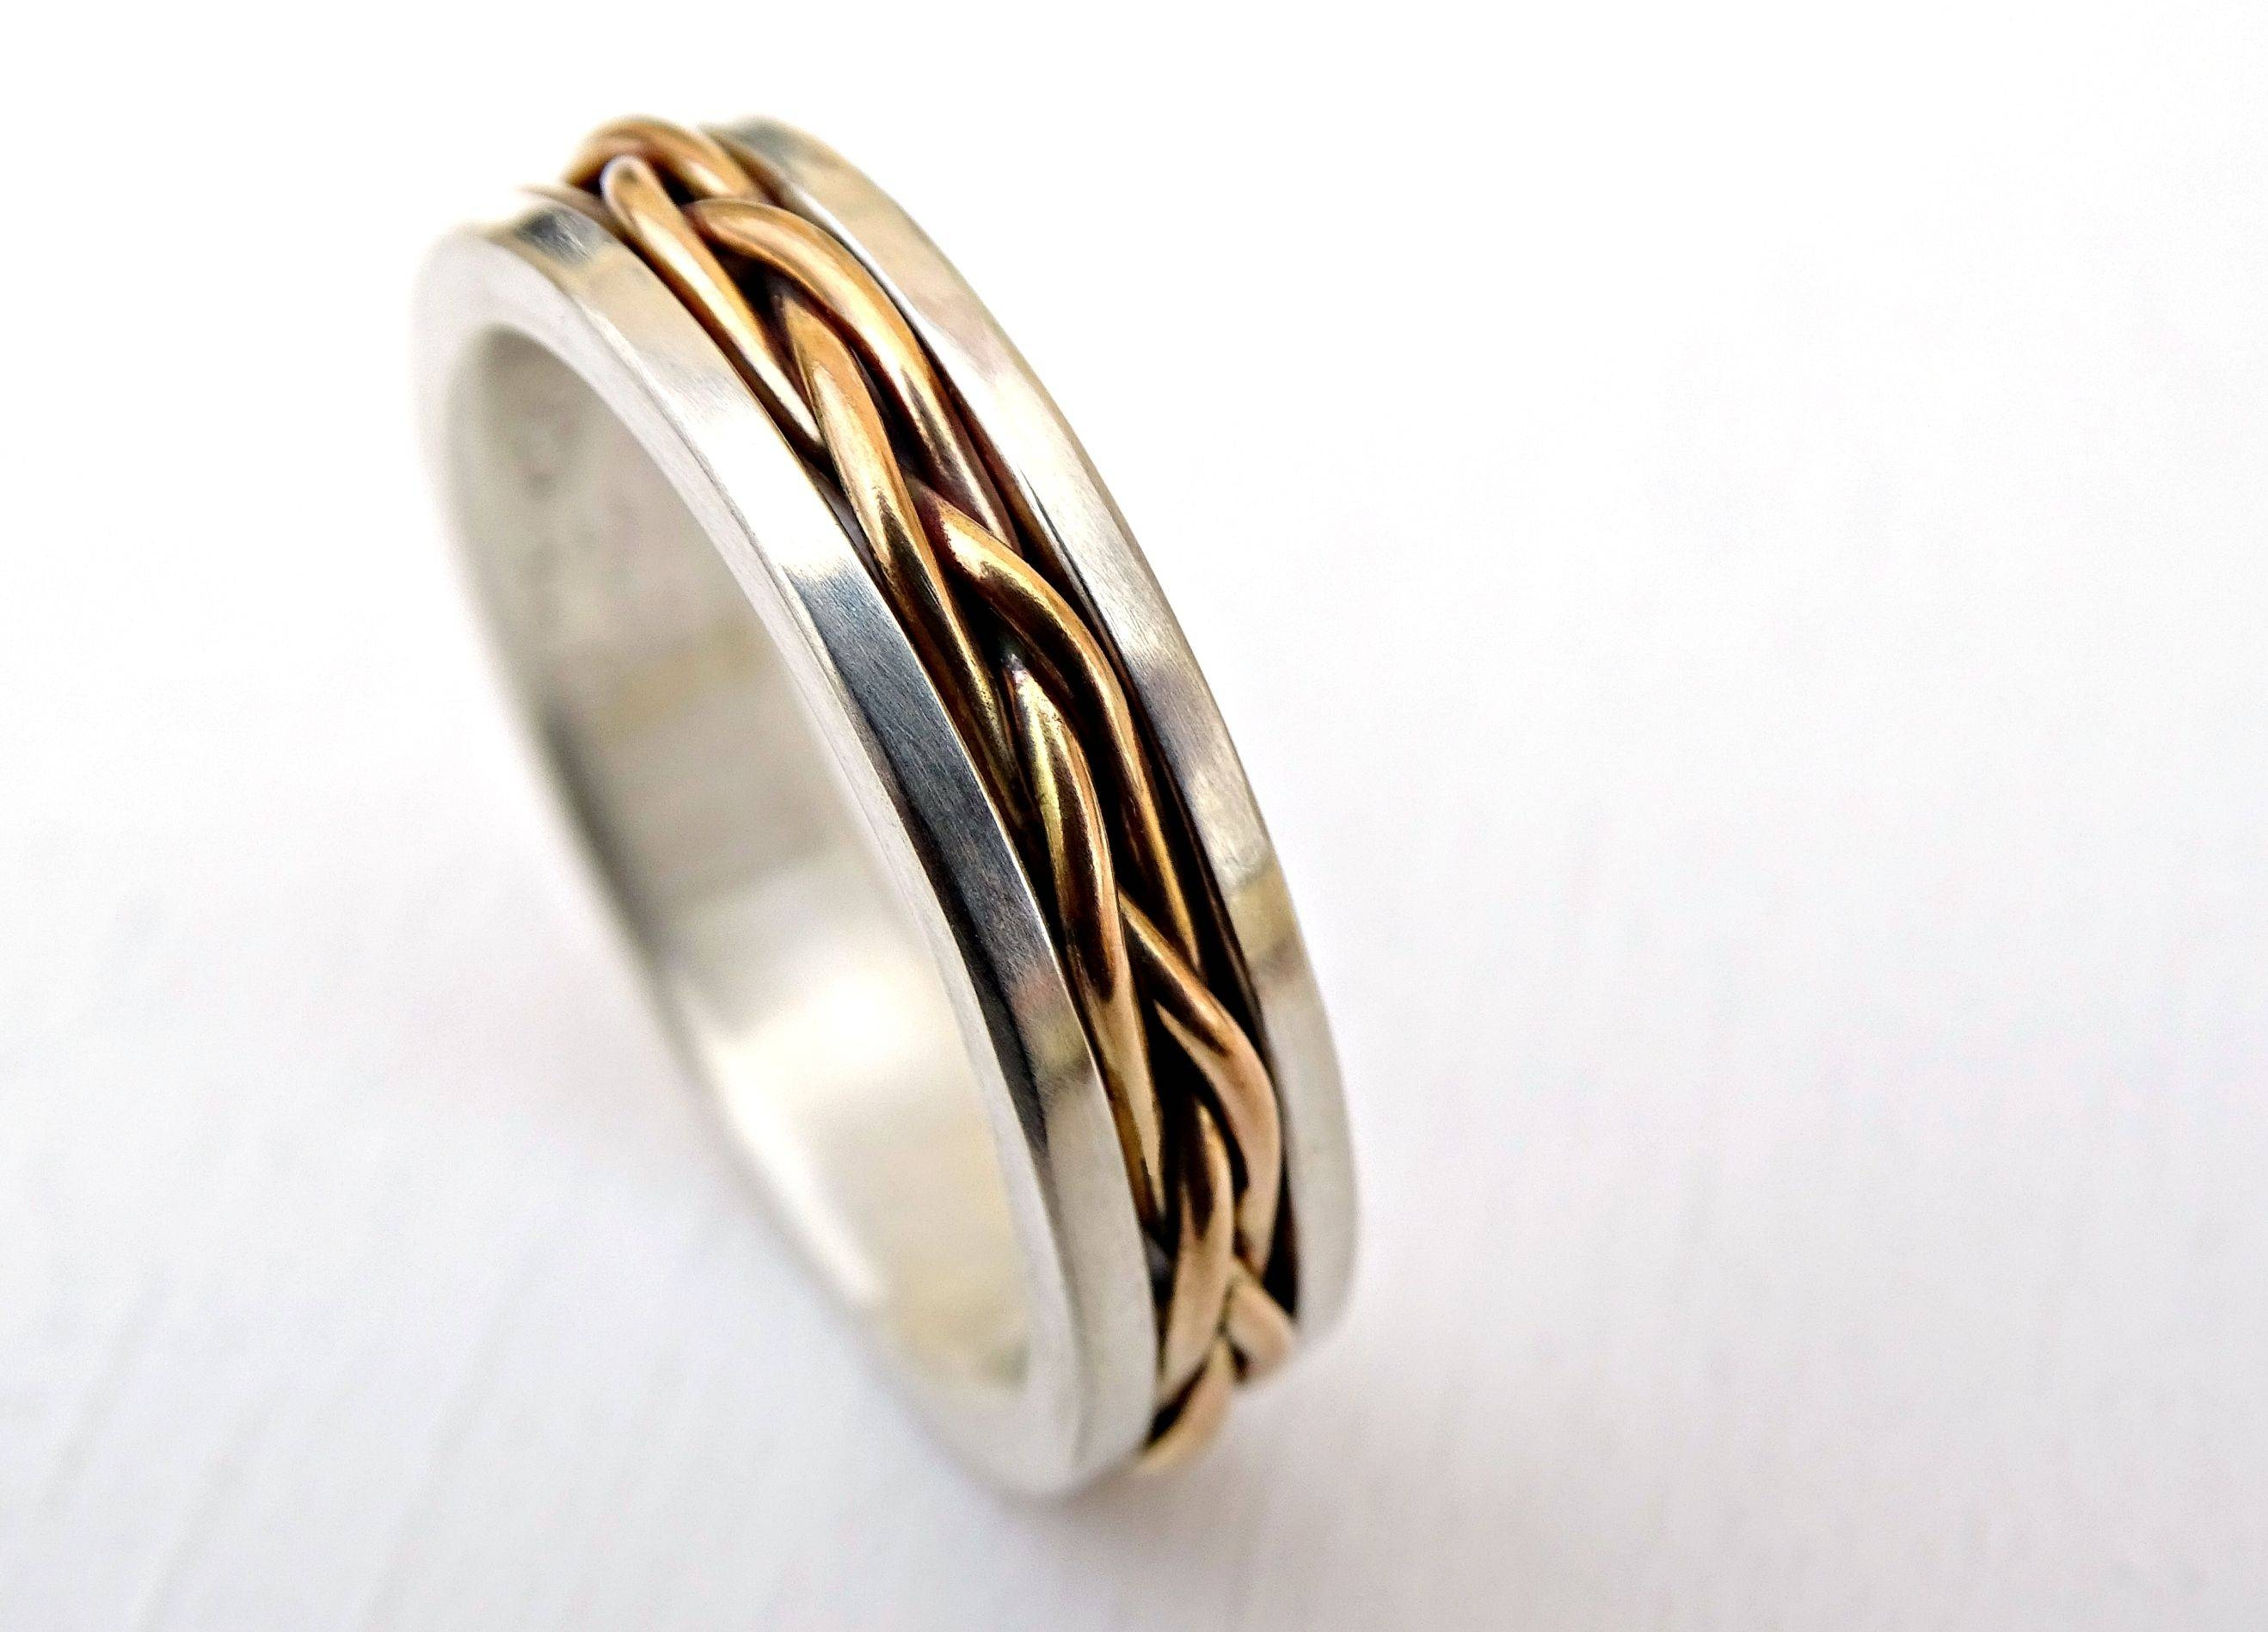 Buy A Custom Made Viking Wedding Band, Mens Promise Ring Or Unique Within Viking Wedding Bands (View 3 of 15)